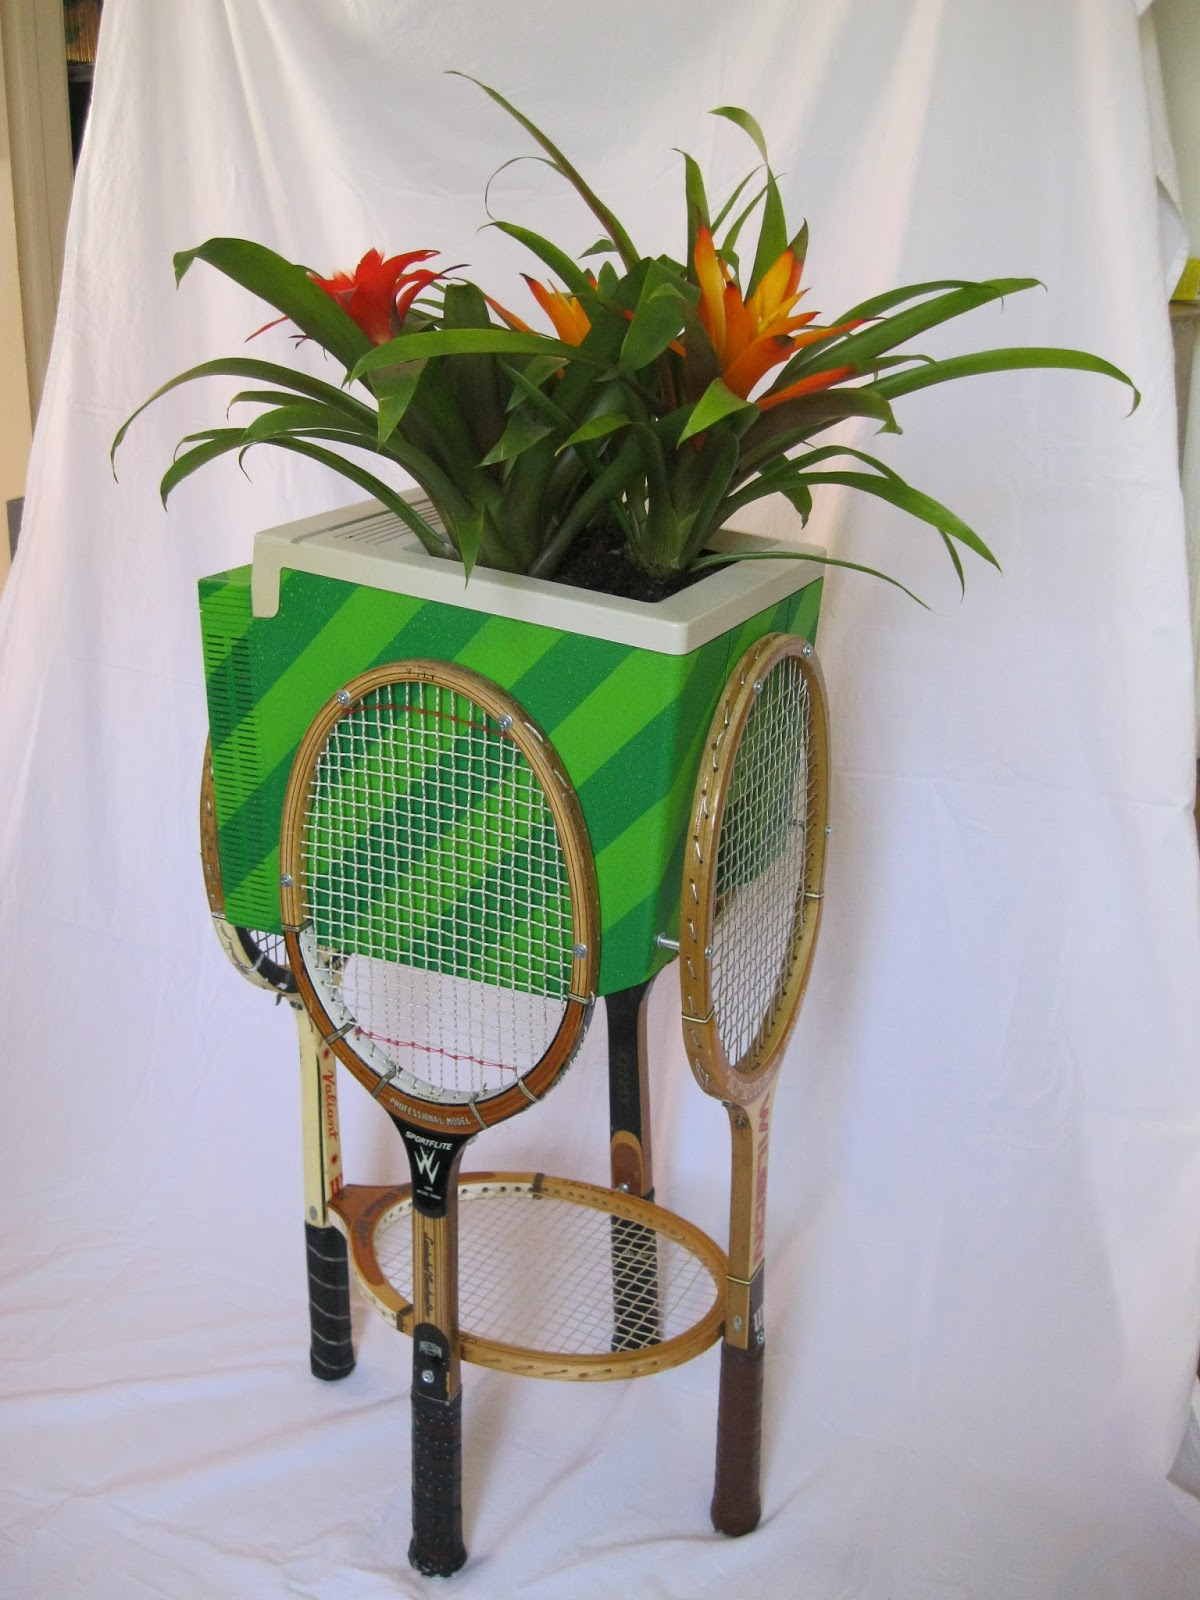 How To Recycle Bring Back To Life An Old Tennis Rackets